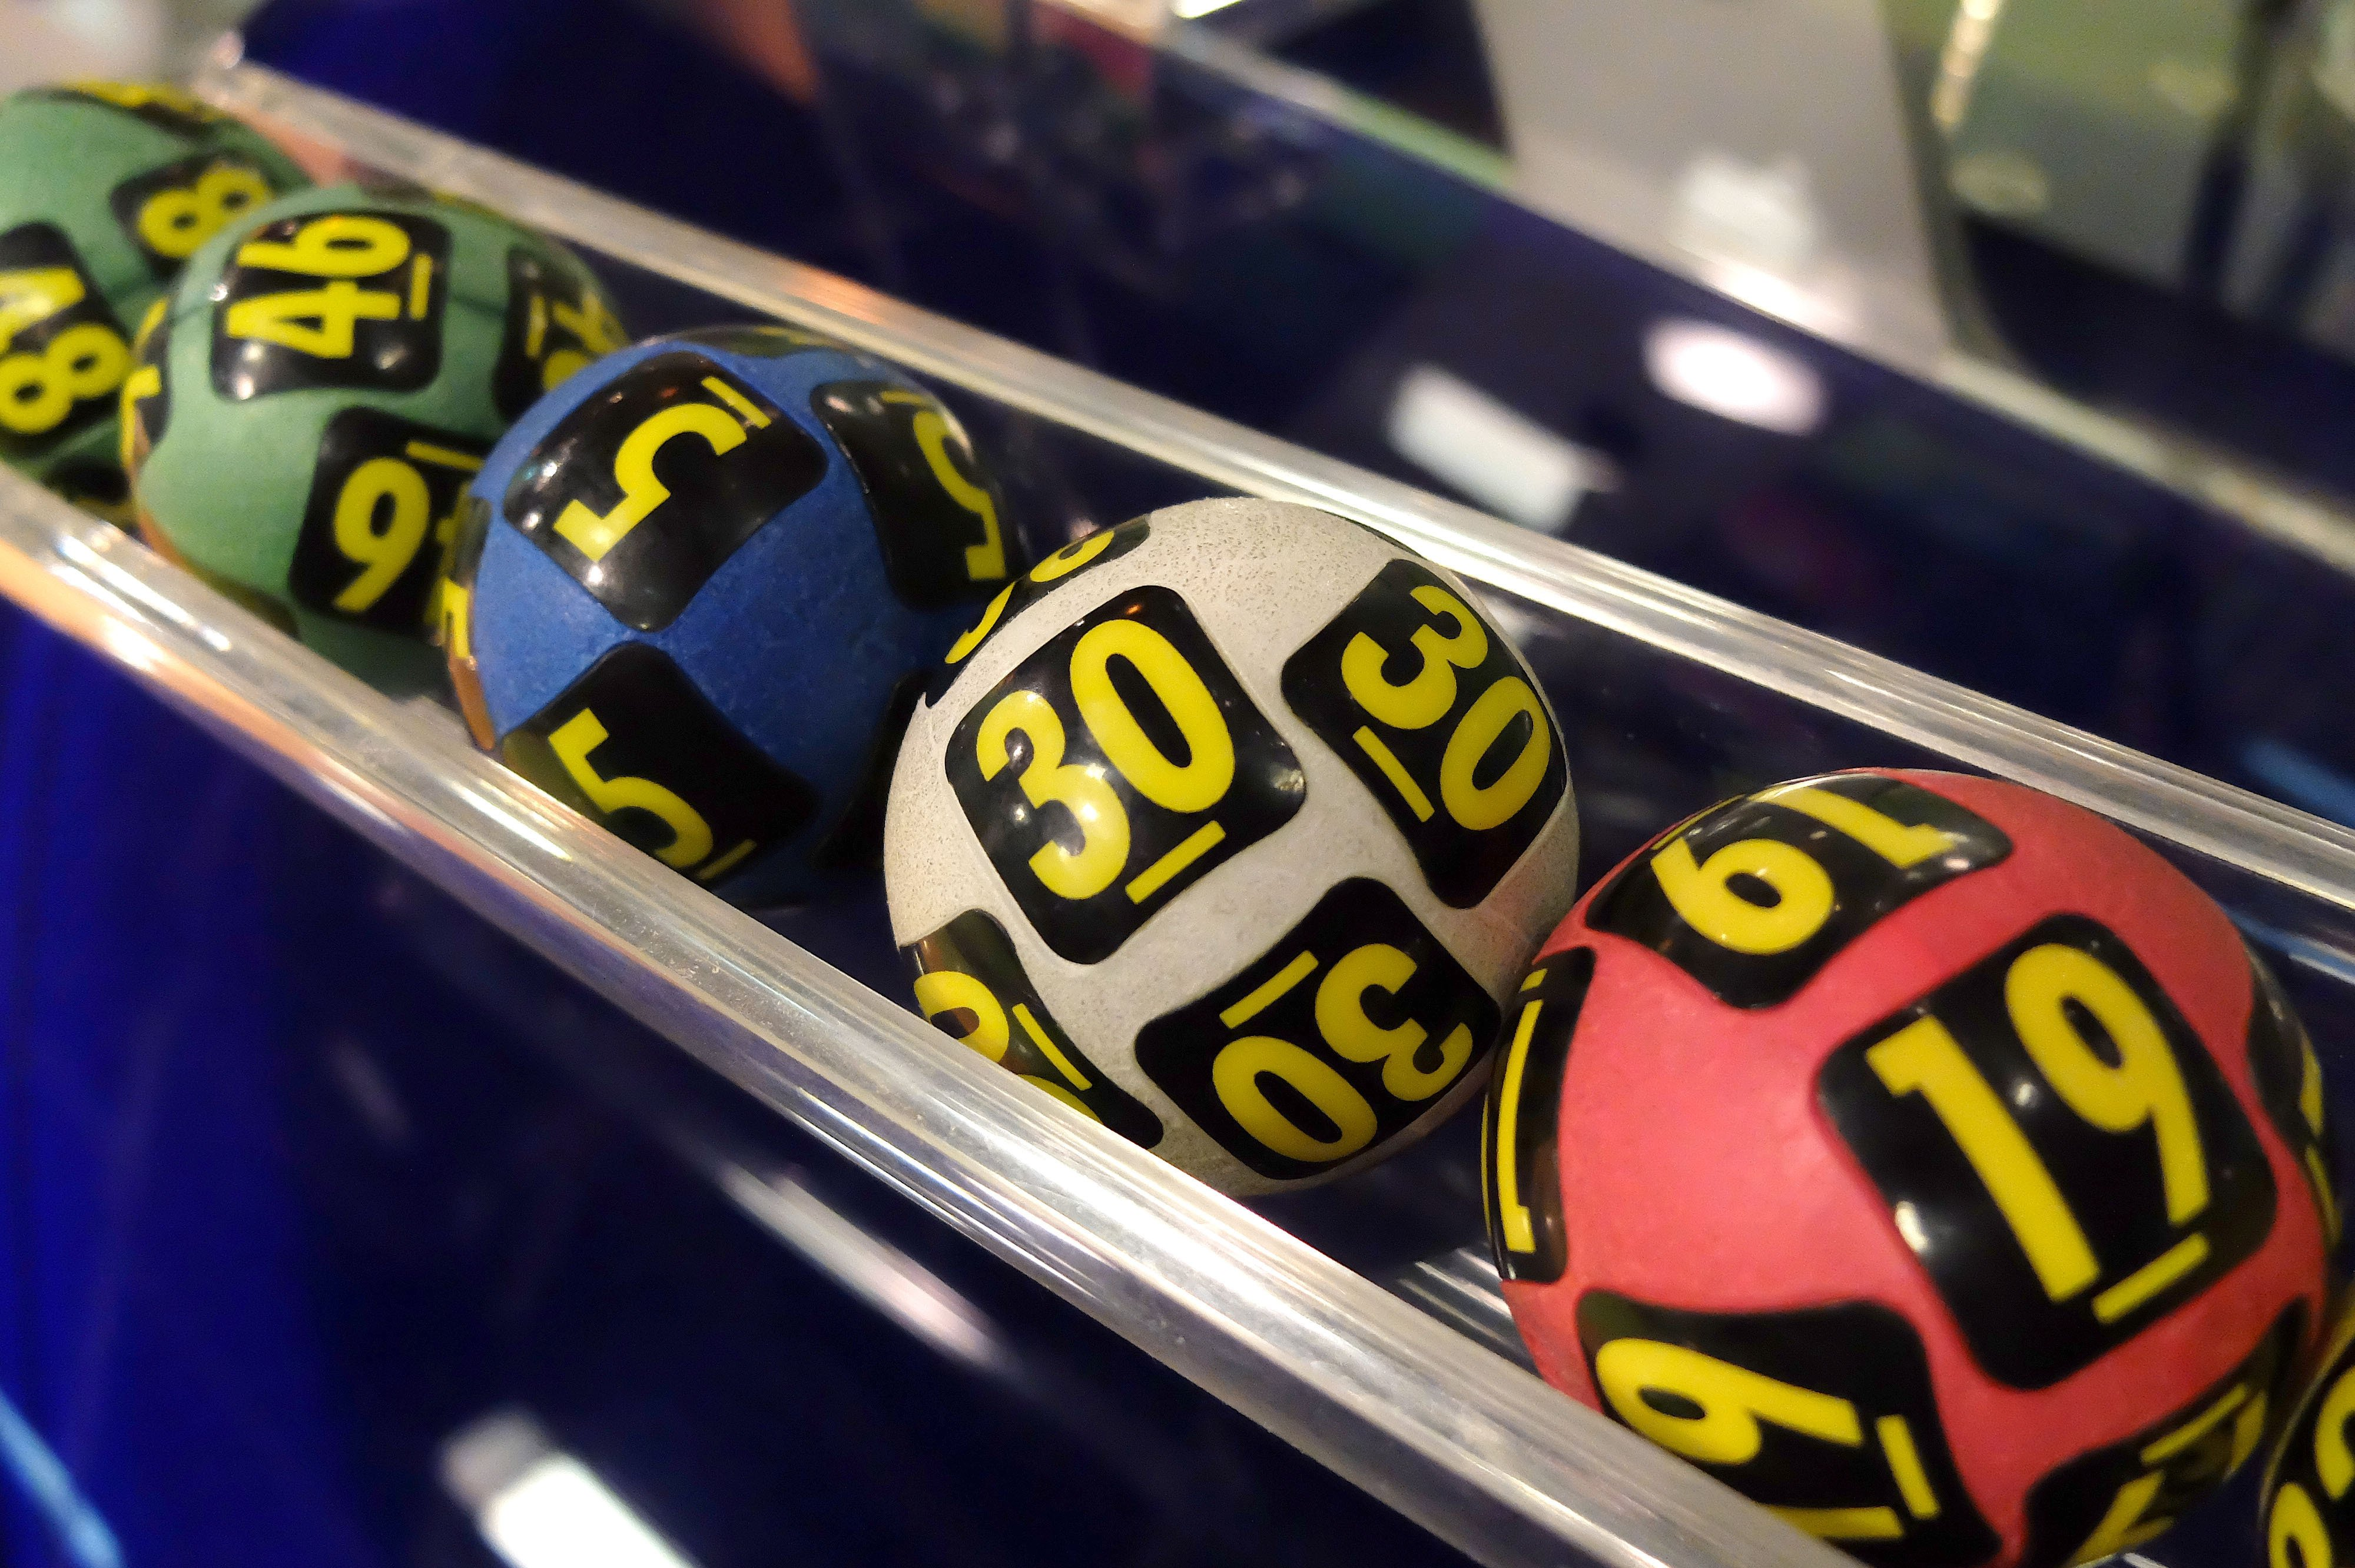 Lottery balls during the extraction of the winning numbers | Photo: Shutterstock